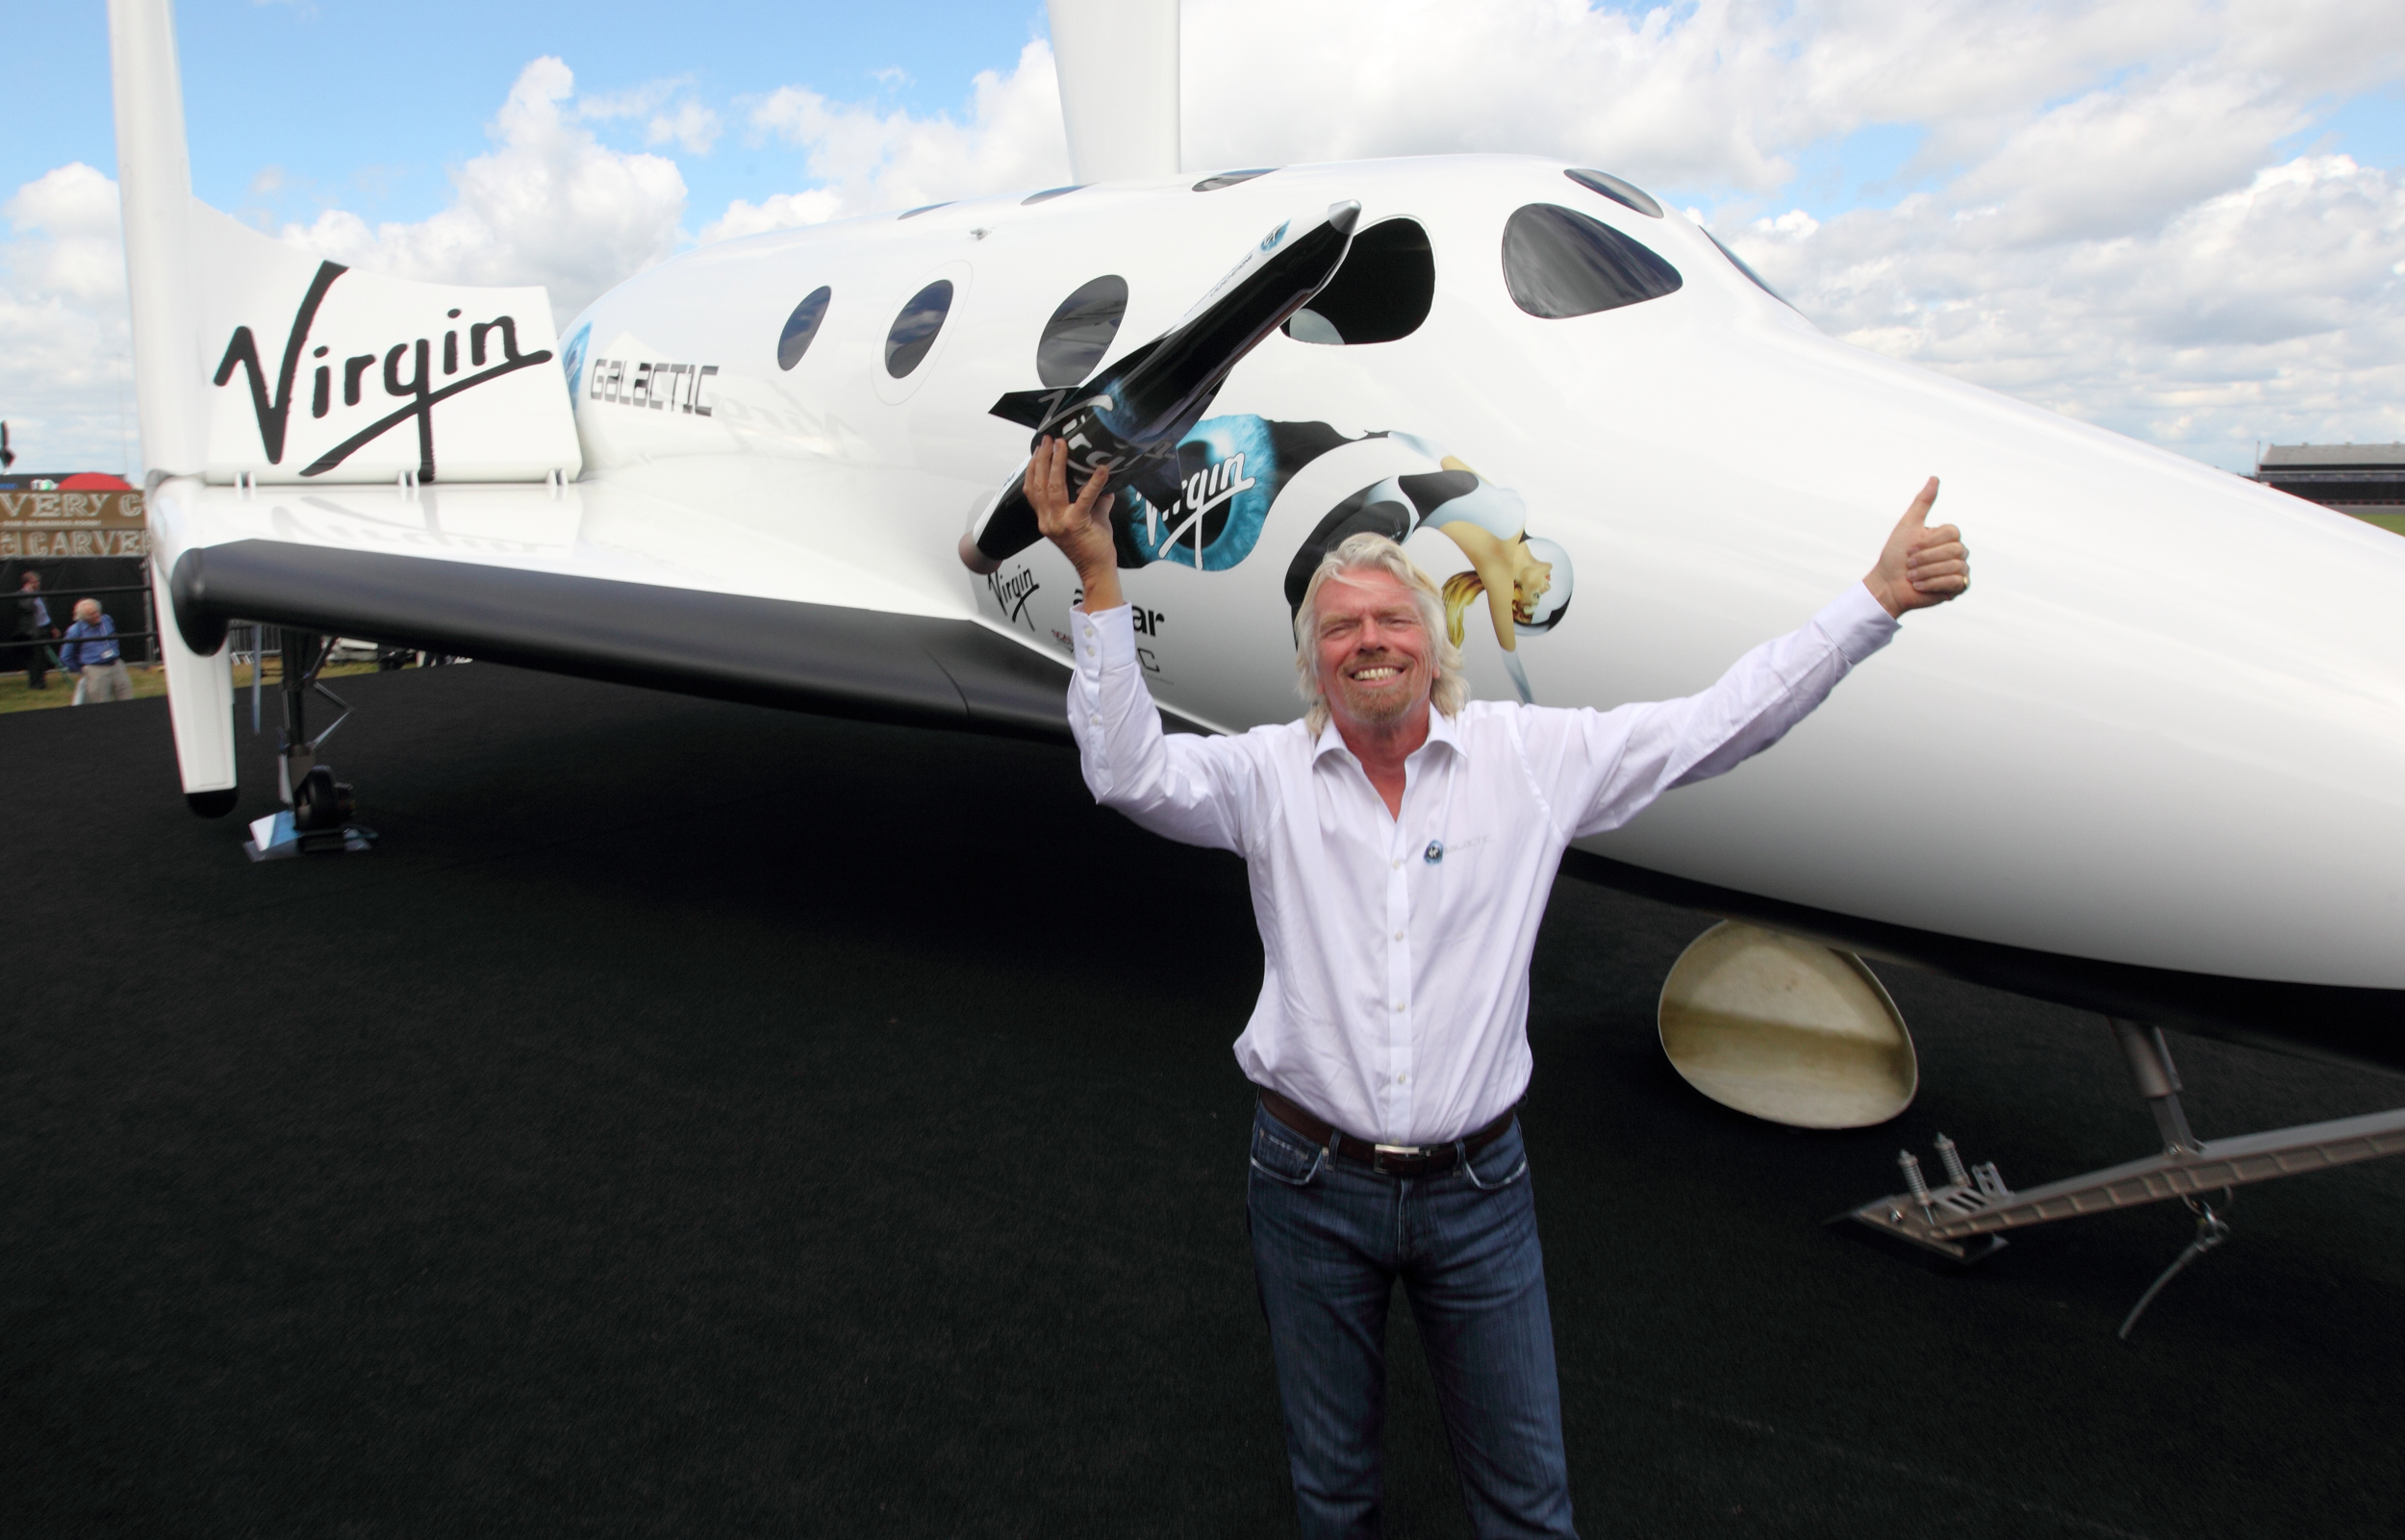 Virgin Galactic founder Richard Branson sets date of first trip into space